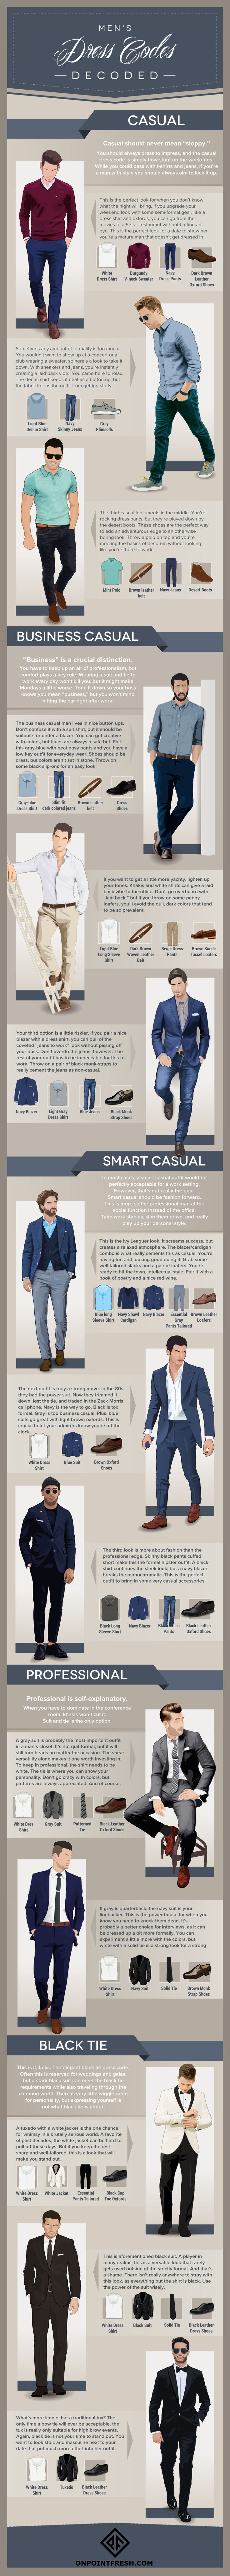 Men's Dress Codes Decoded [Infographic] - everything you need to know about men's styling, from casual to formal wear